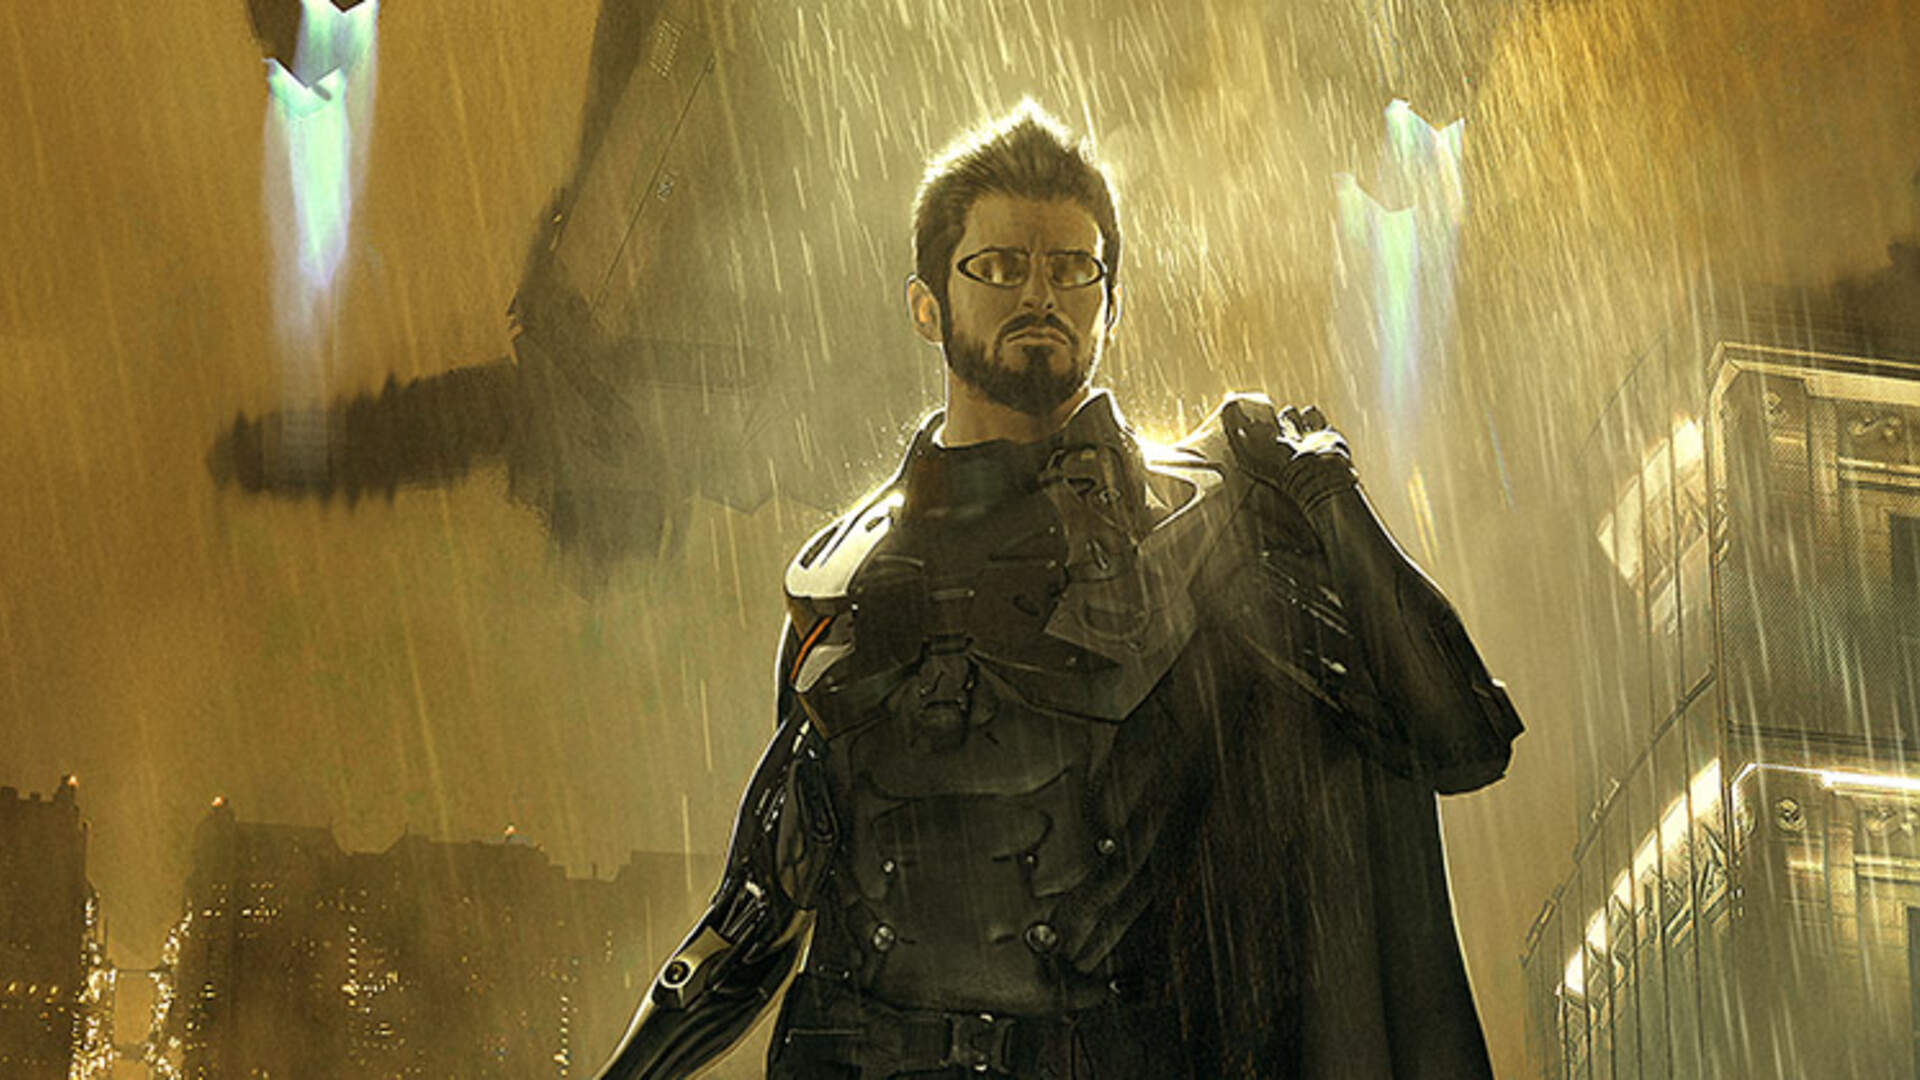 Deus Ex: Mankind Divided Wants You to Keep Your Options Open